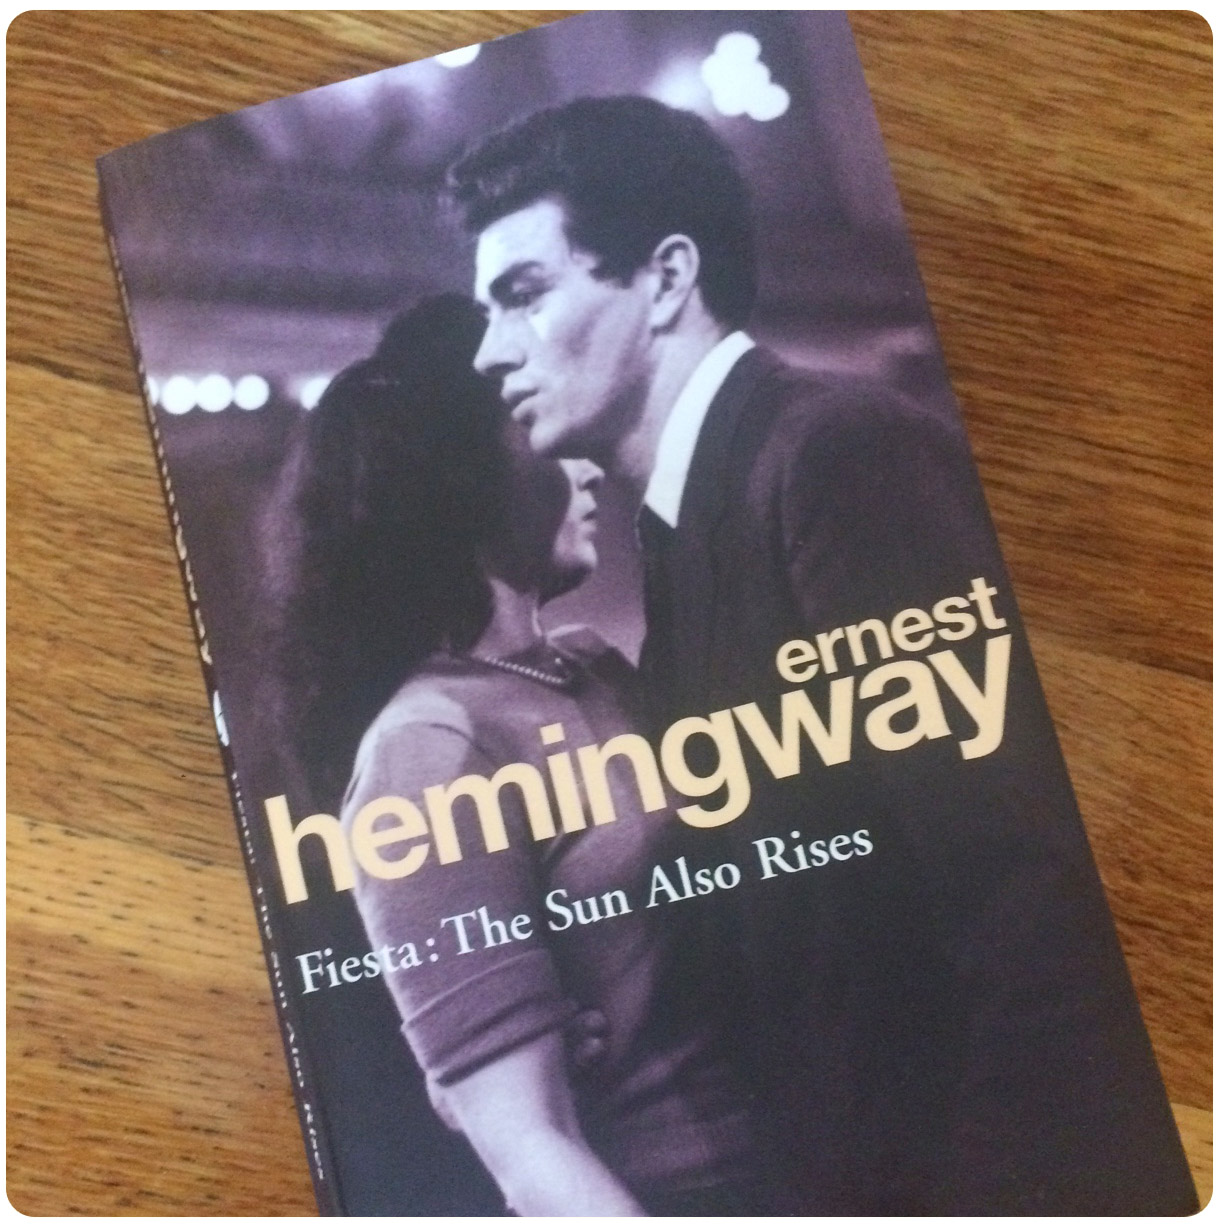 images and thoughts of the lost generation in the novel the sun also rises by ernest hemingway The sun also rises brought ernest hemingway fame and fortune here are  quotes from the novel about the lost generation  then i thought of her walking  up the street and stepping into the car, as i had last seen her, and of course in a  little while i felt  a picture of american writer ernest hemingway.